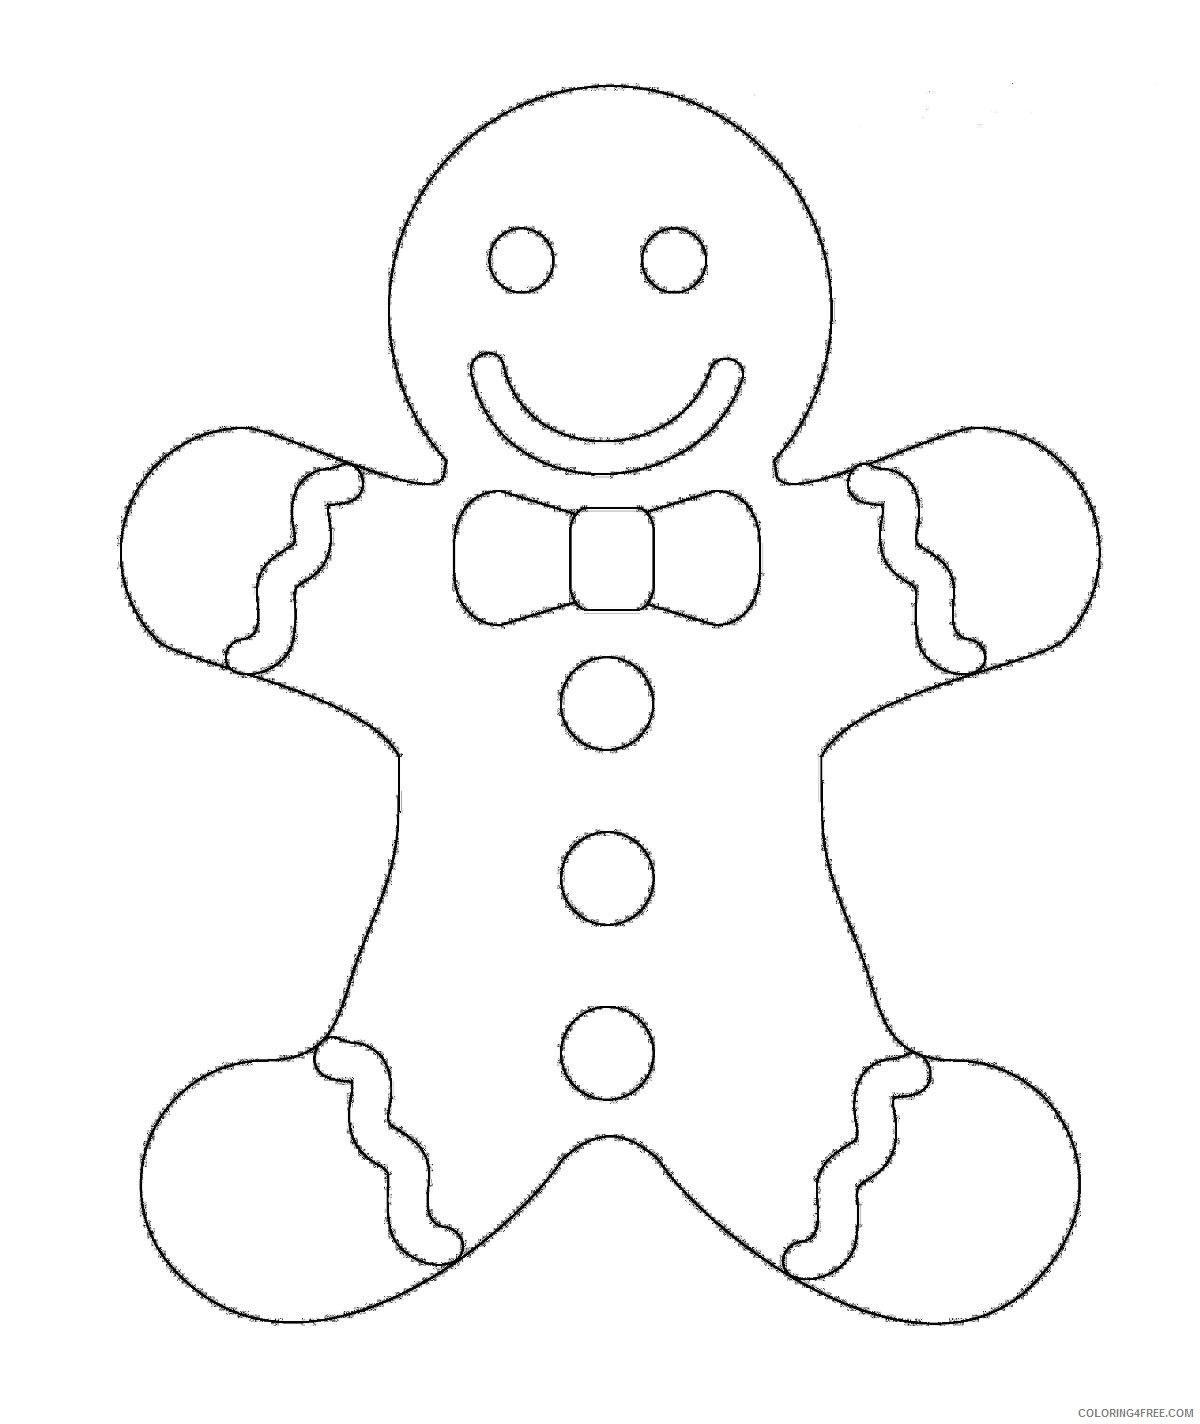 gingerbread man coloring pages for toddler Coloring4free